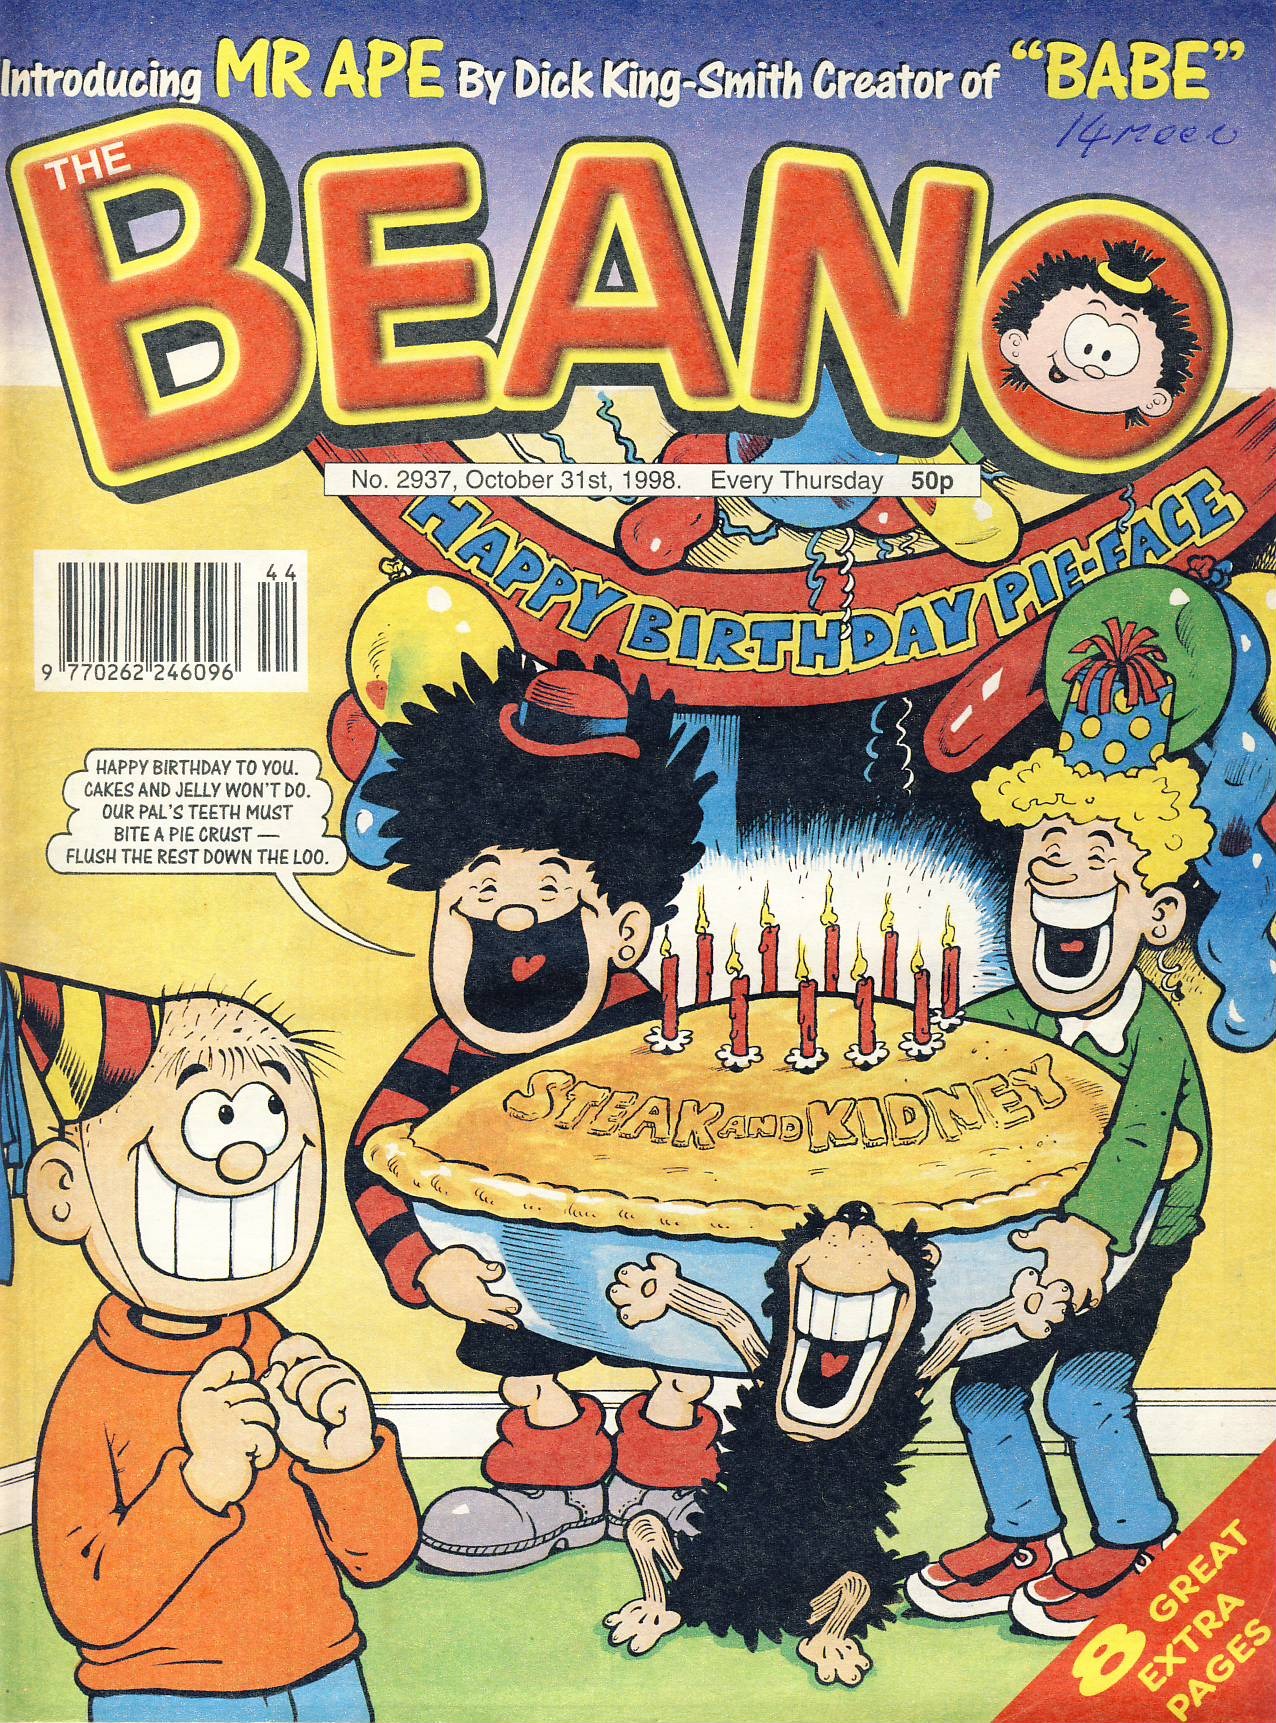 1998 October 31st BEANO vintage comic Good Gift Christmas Present Birthday Anniversary ref325a pre-owned item in good read condition.